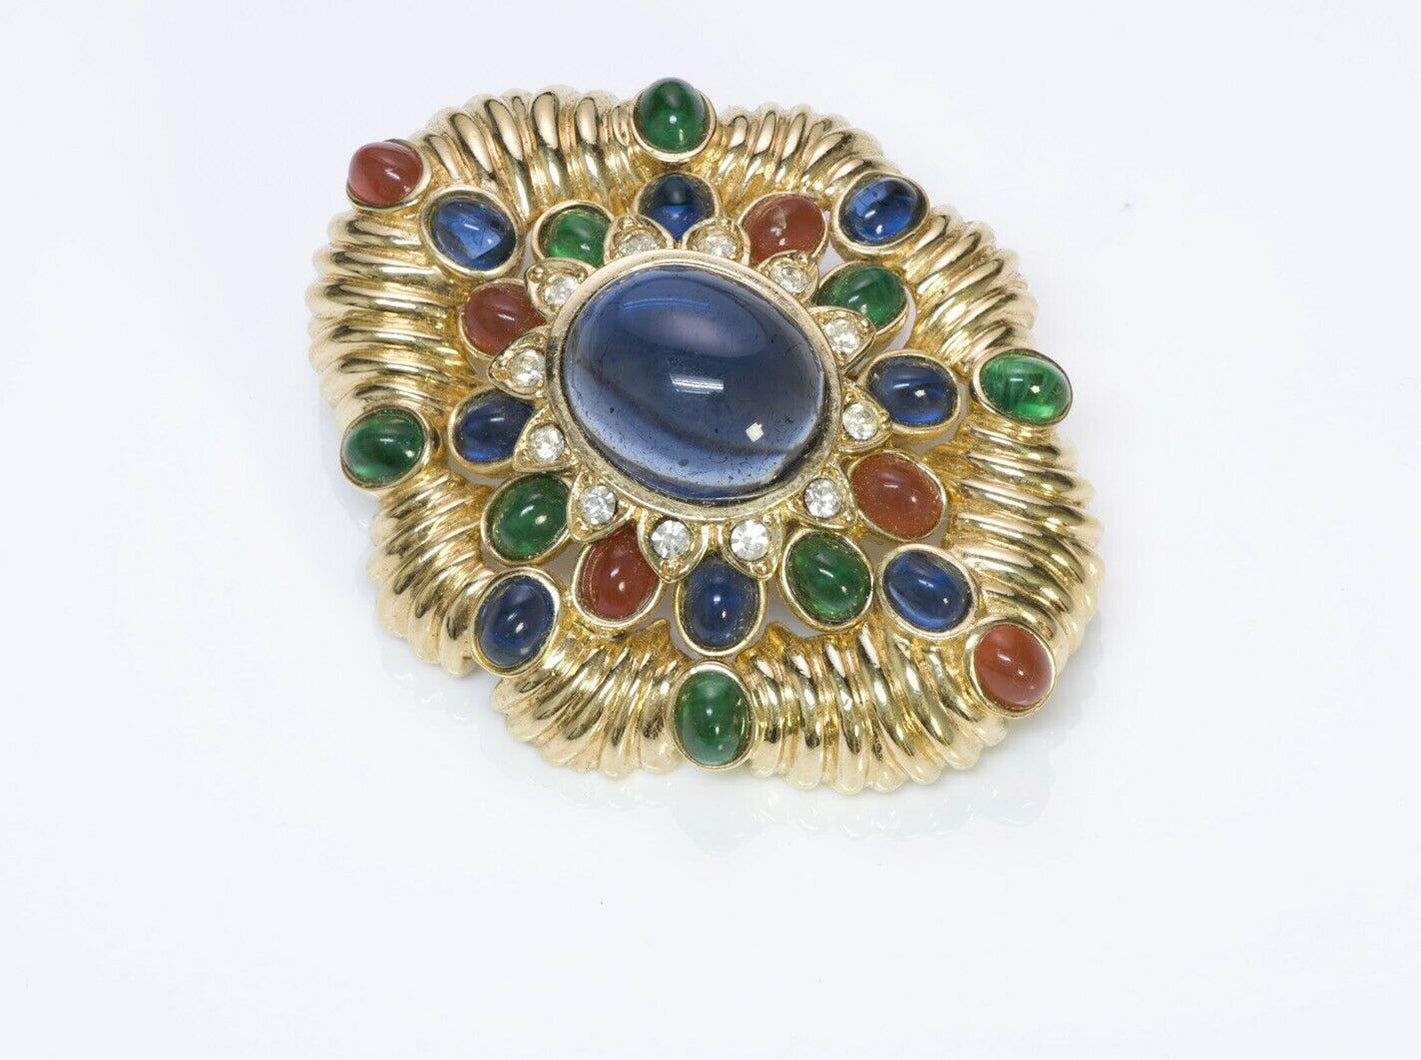 CINER Jewels of India Blue Red Green Cabochon Glass Pendant Brooch